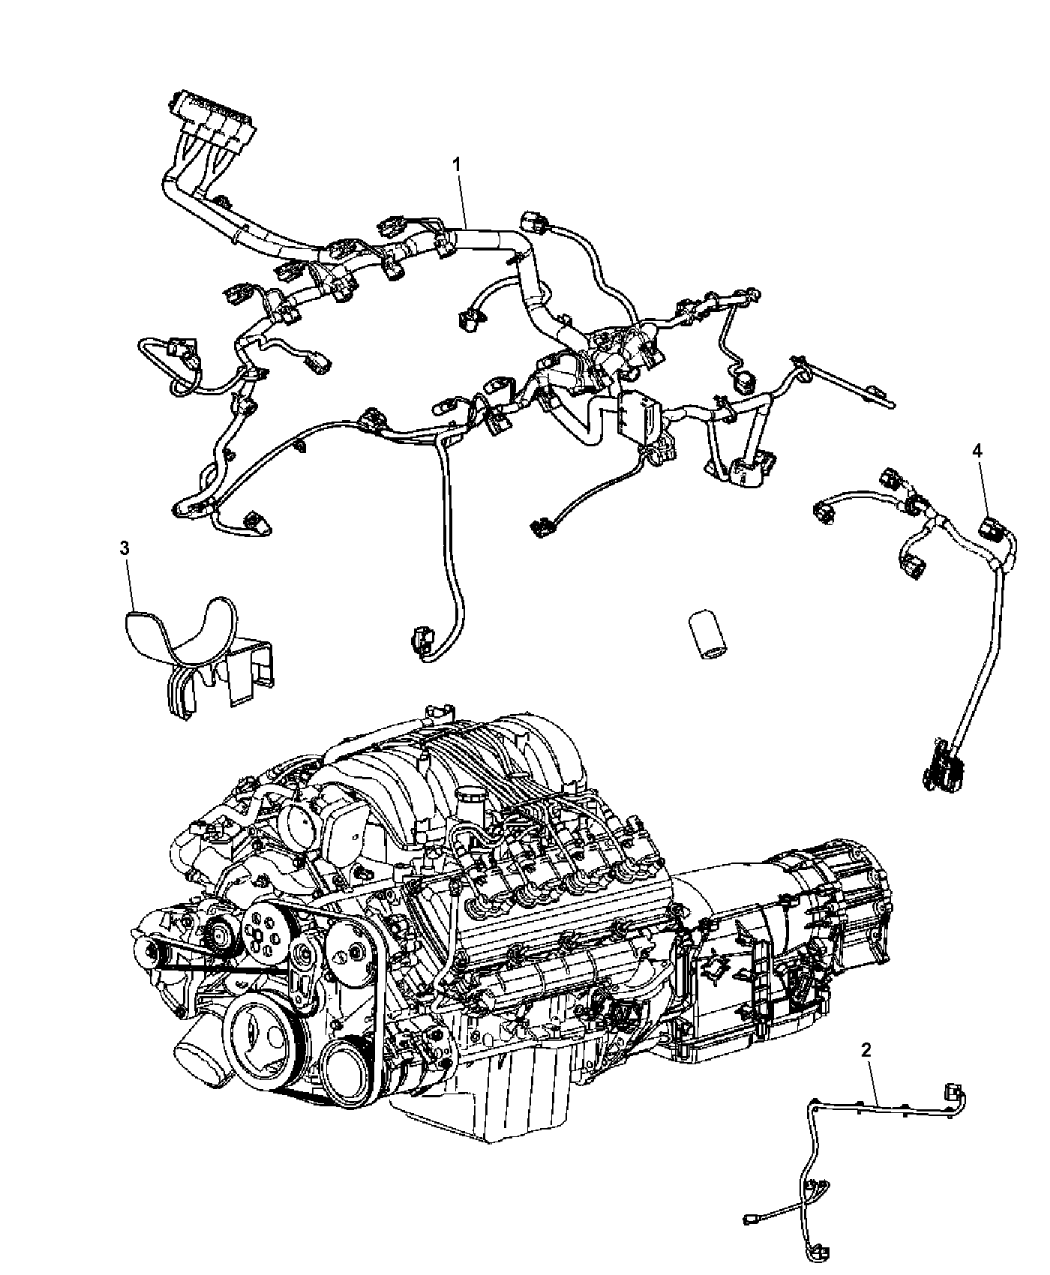 Jeep Commander Engine Diagram 5 7 L Emi Auto Electrical Wiring Related With